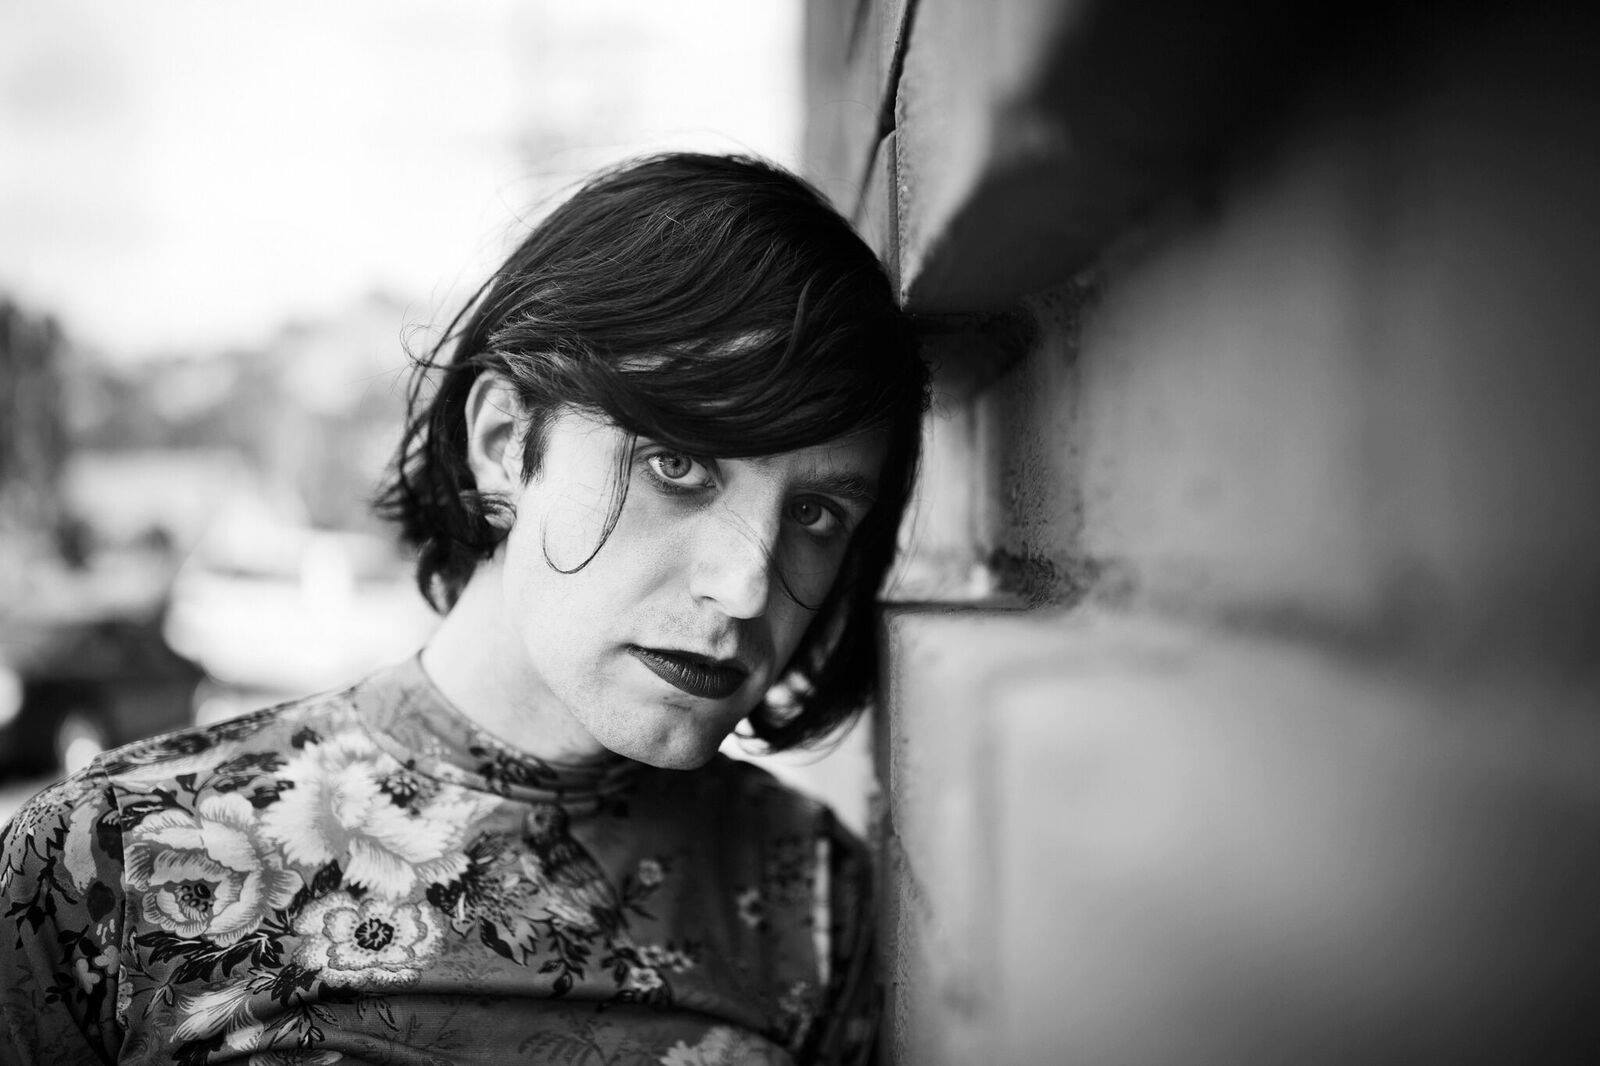 Ezra Furman am 30. April 2020 @ Postgarage.